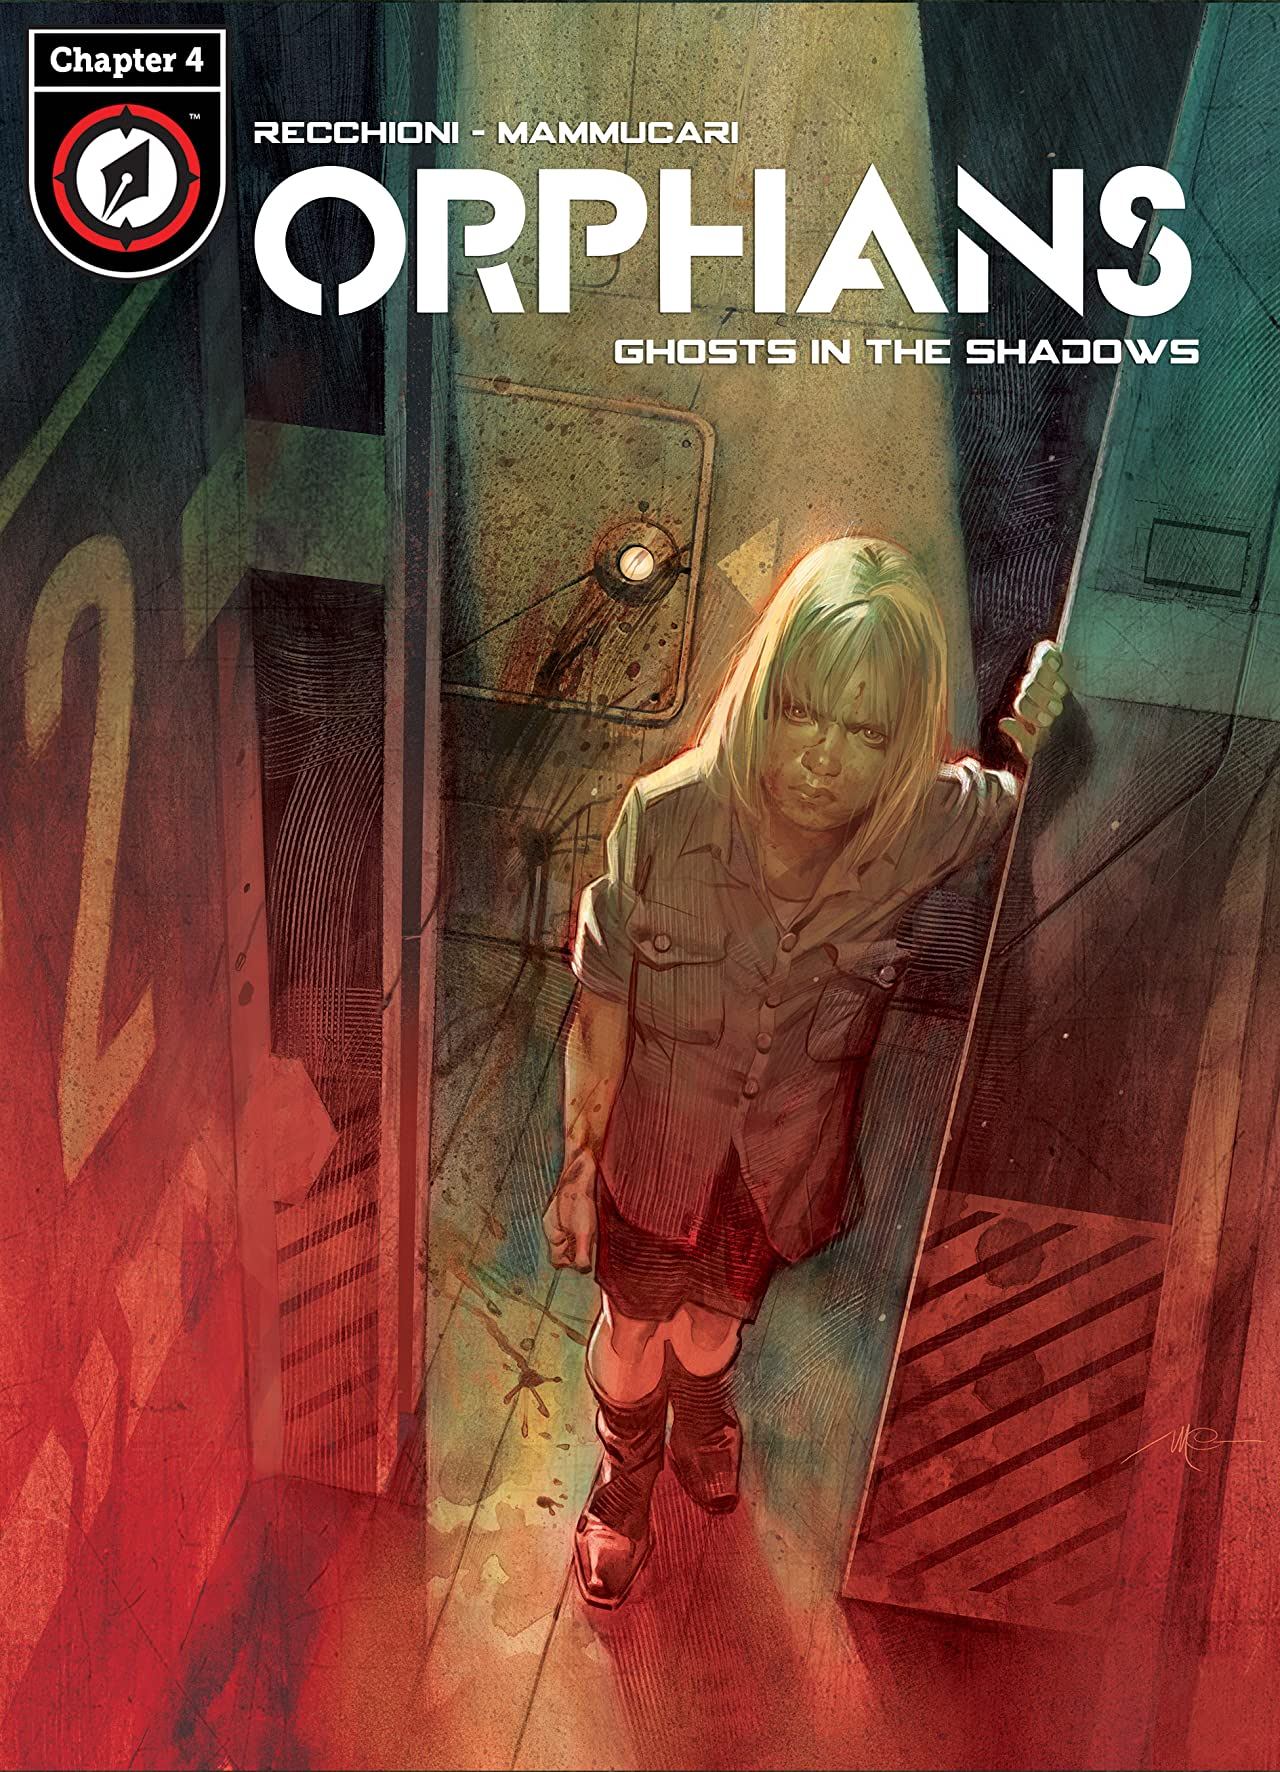 Orphans Vol. 1 #4: Ghosts in the Shadows